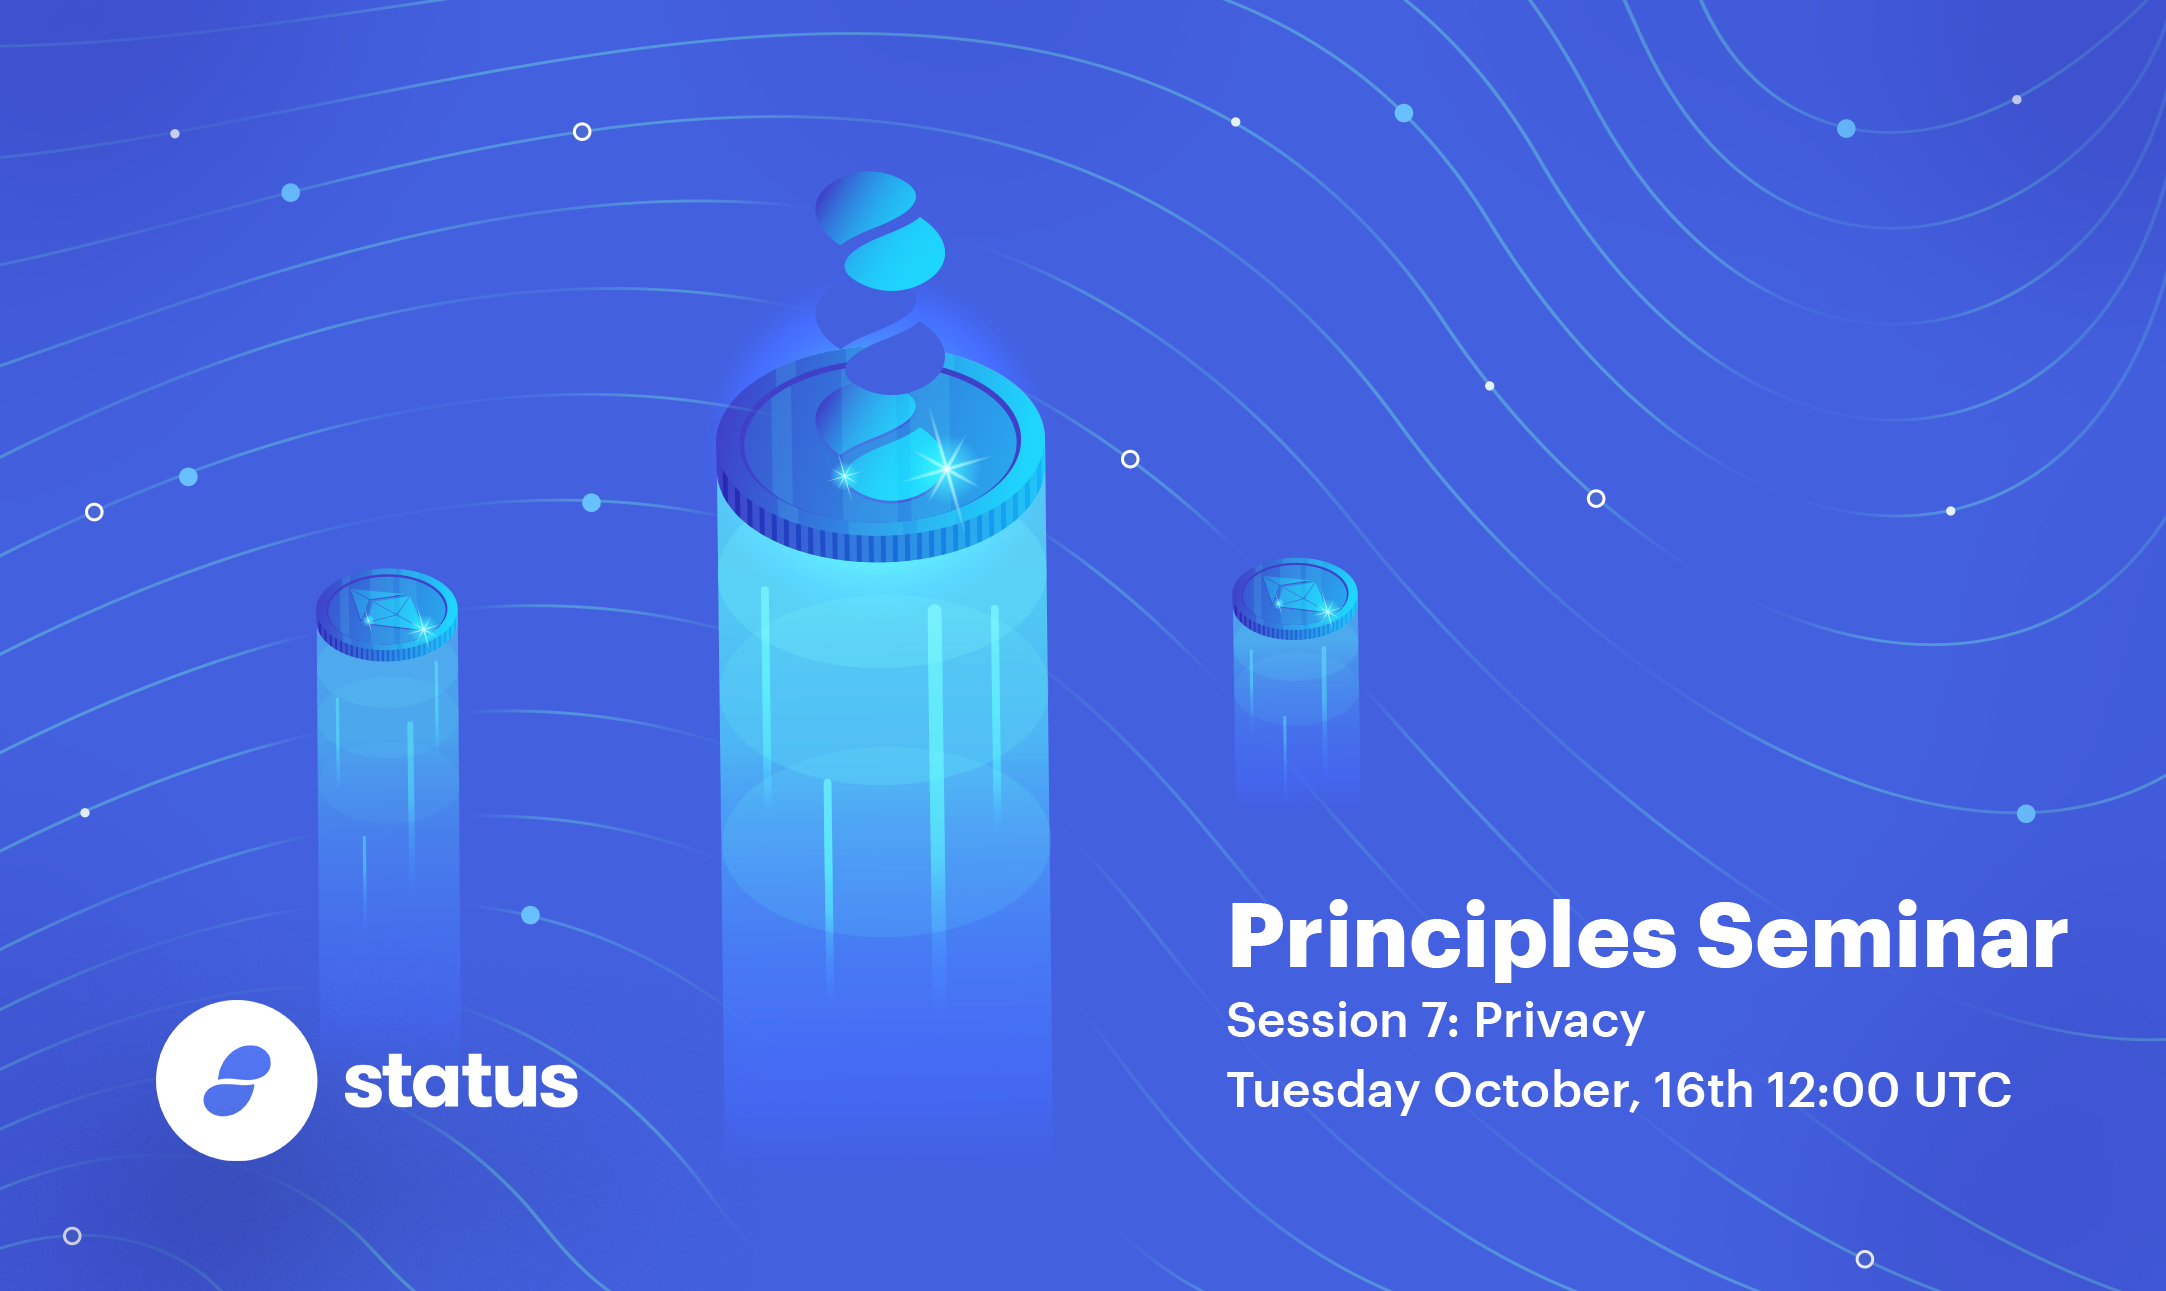 Principles Seminar - Session 7: Privacy